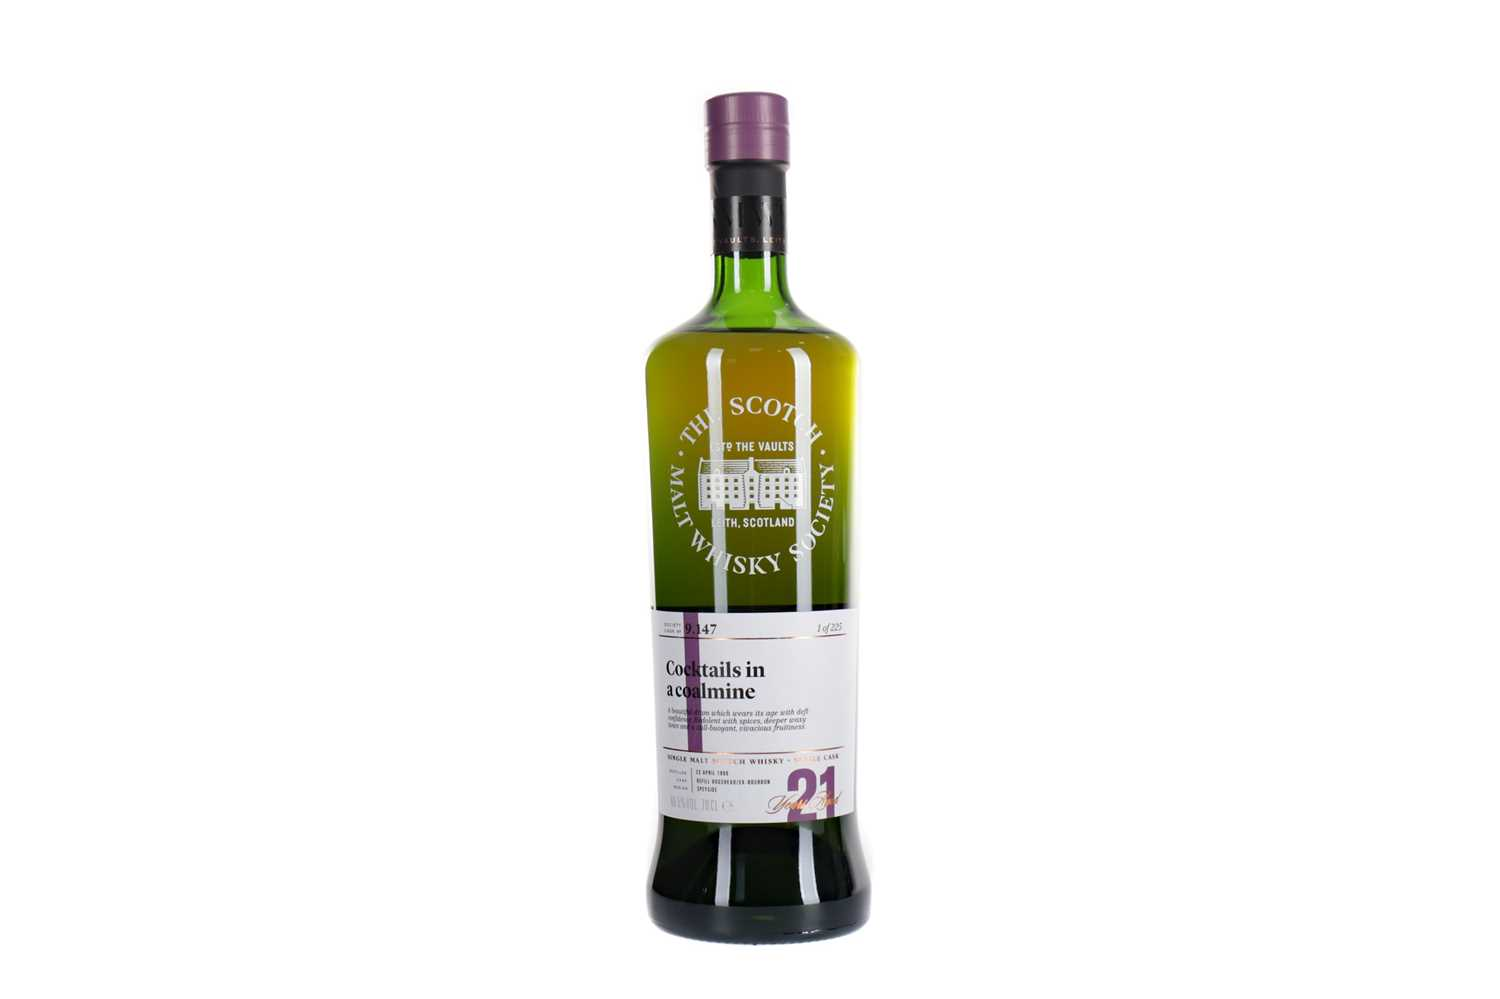 Lot 99 - GLEN GRANT 1996 SMWS 9.147 AGED 21 YEARS